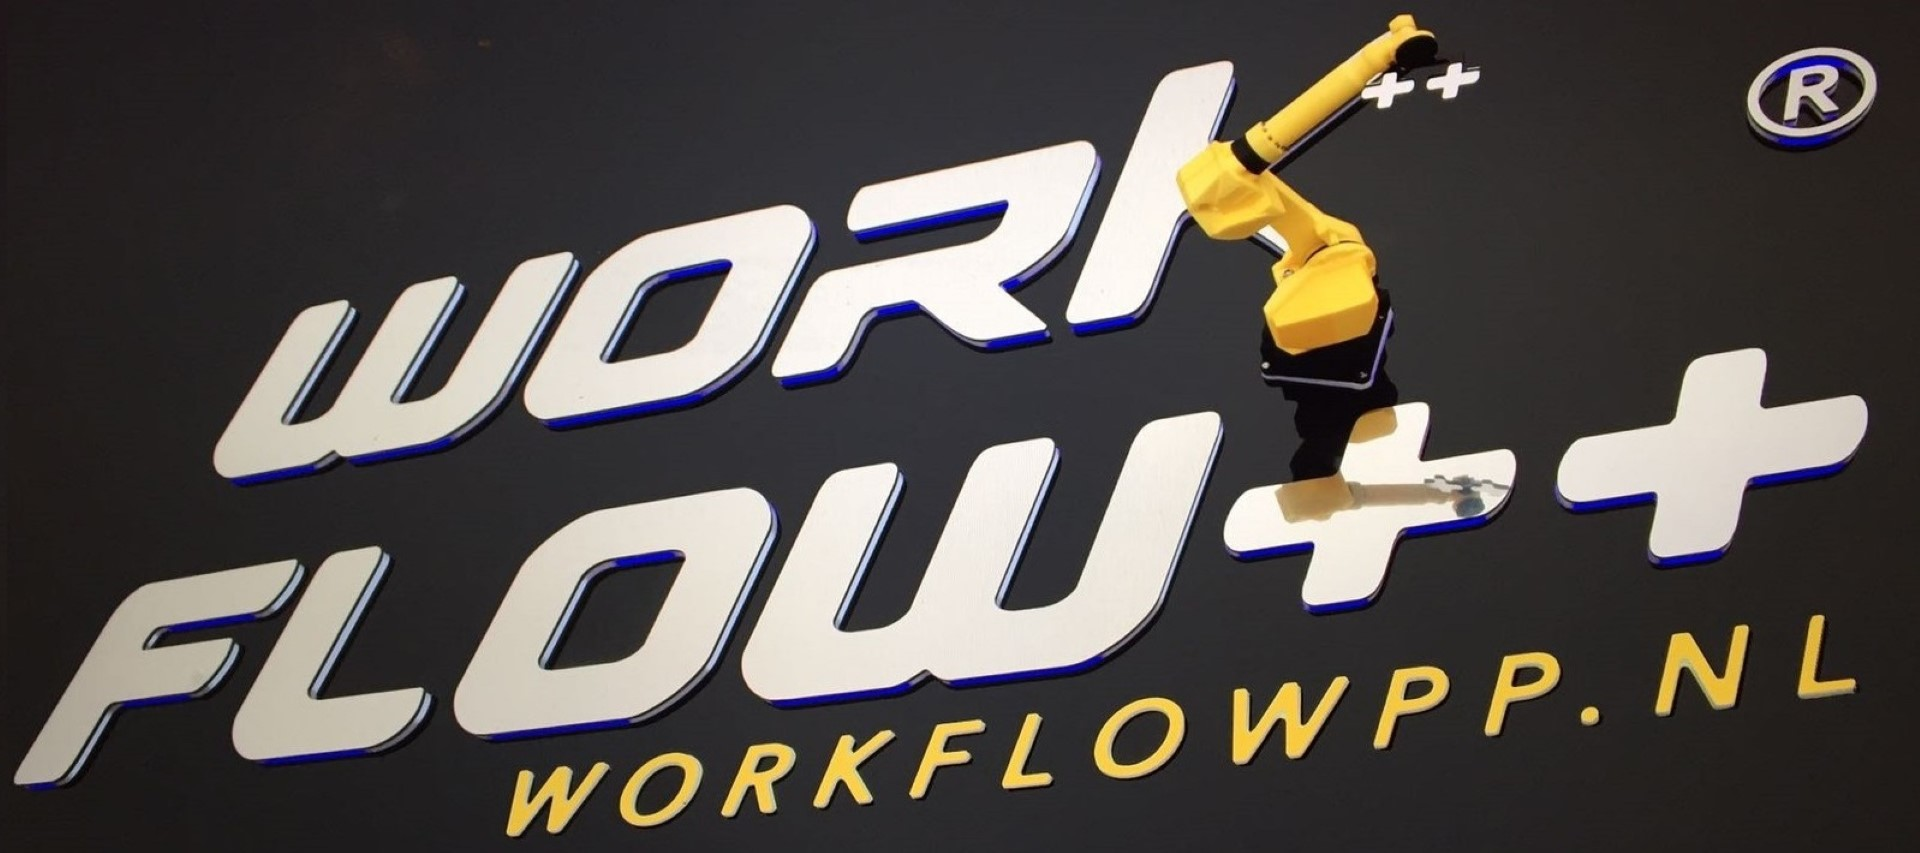 Workflowpp or Workflow++